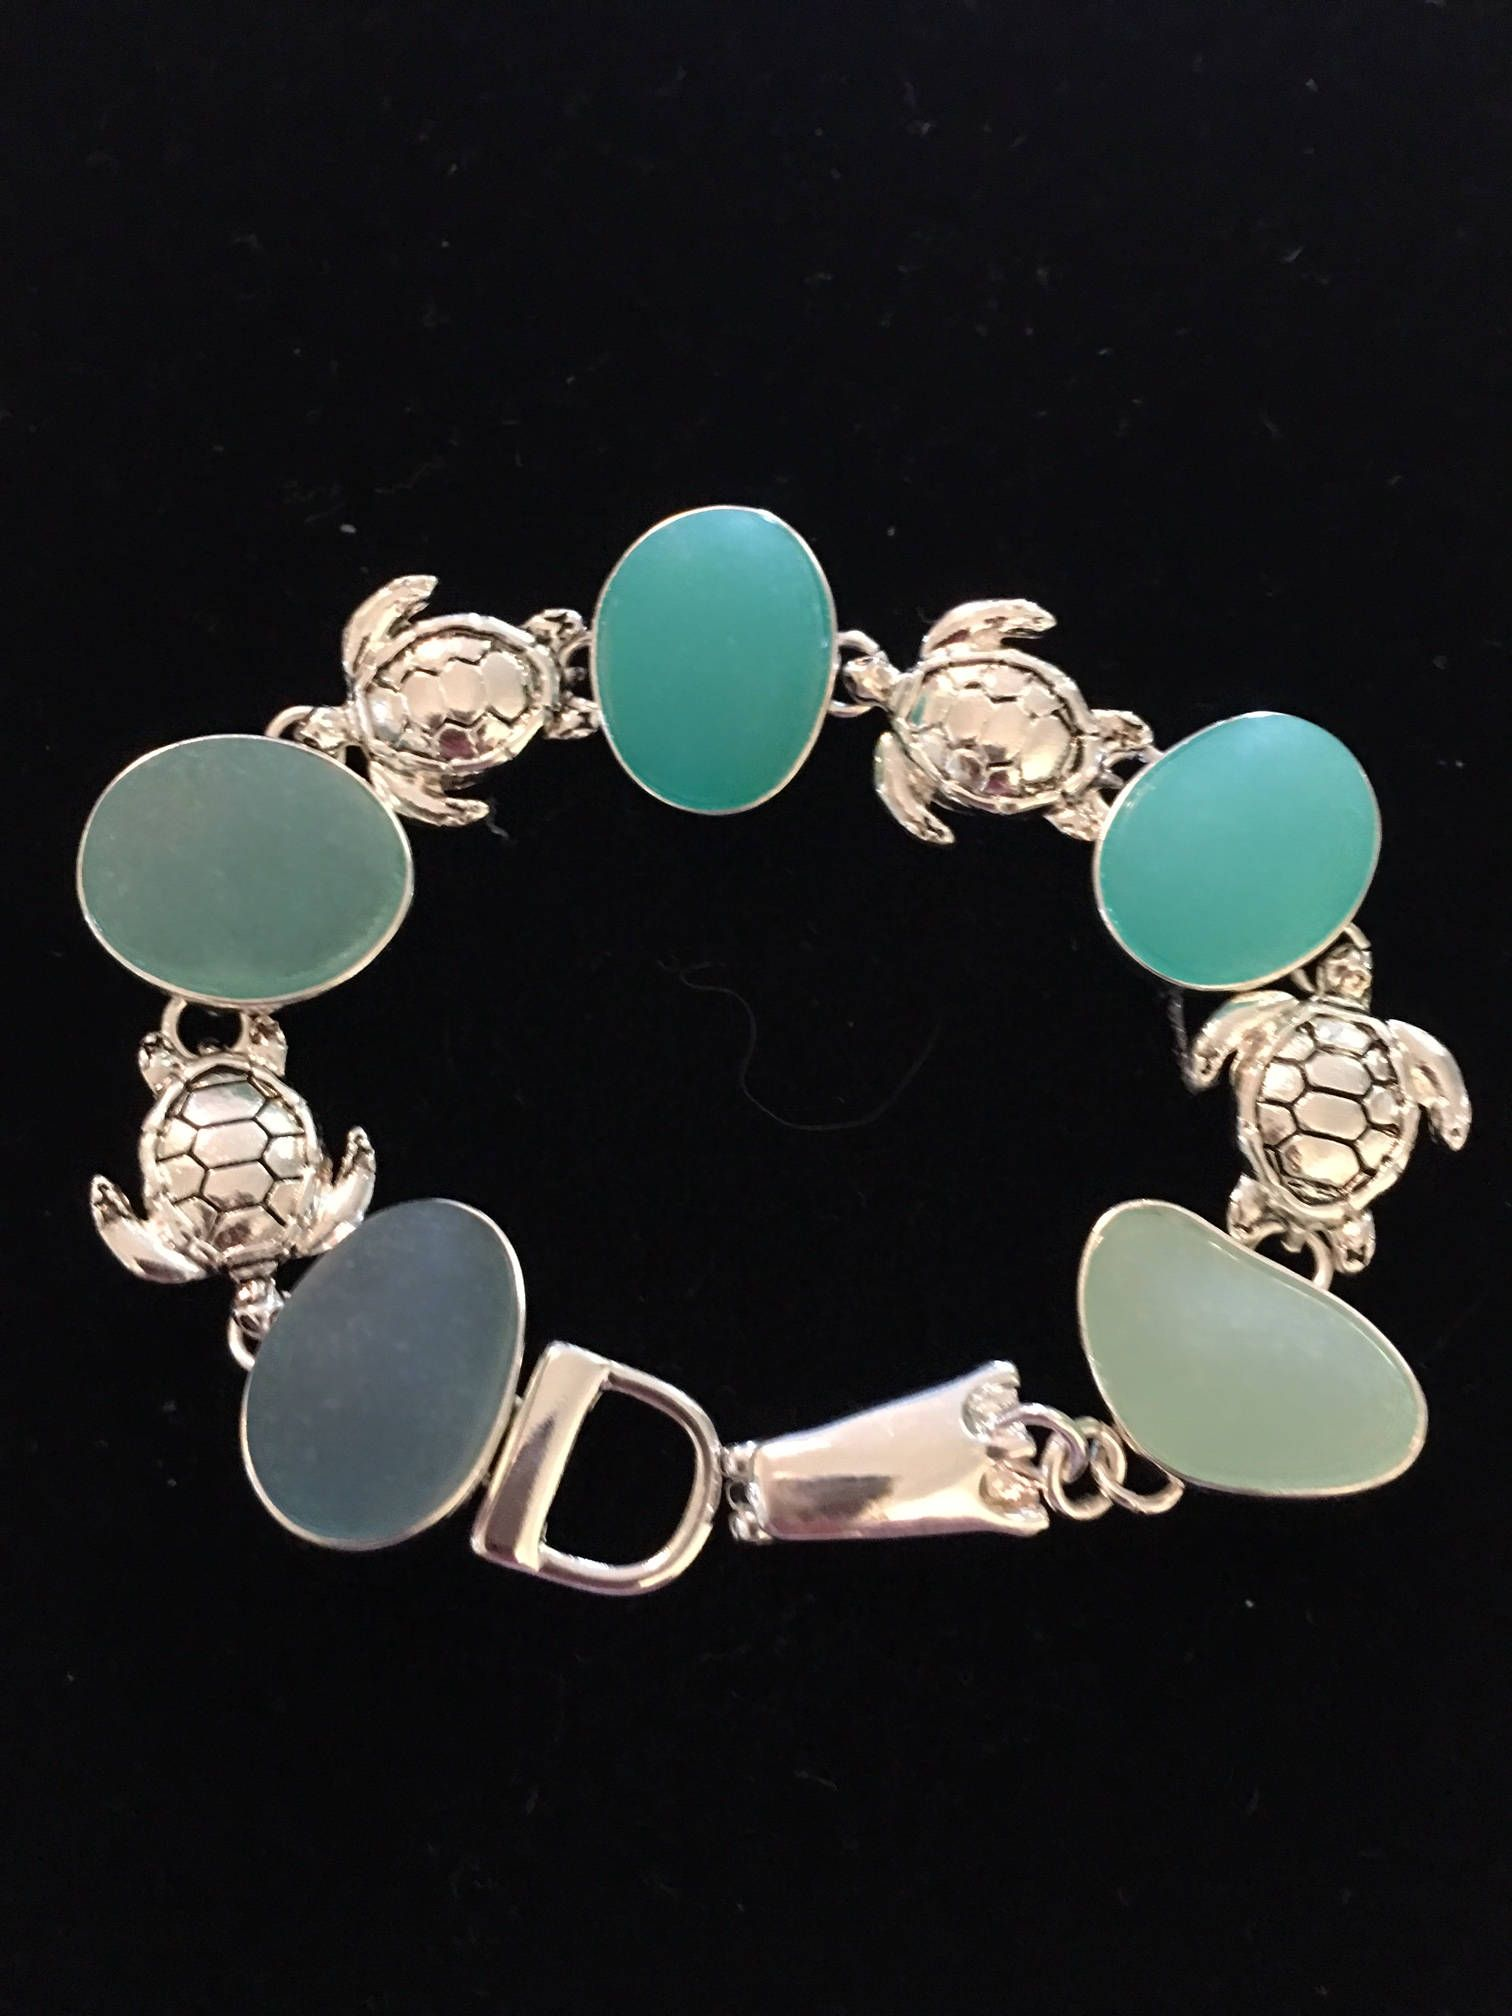 Aqua Sea Gl And Sterling Silver Turtle Bracelet By Venicebytheseajewels On Etsy Jewelry